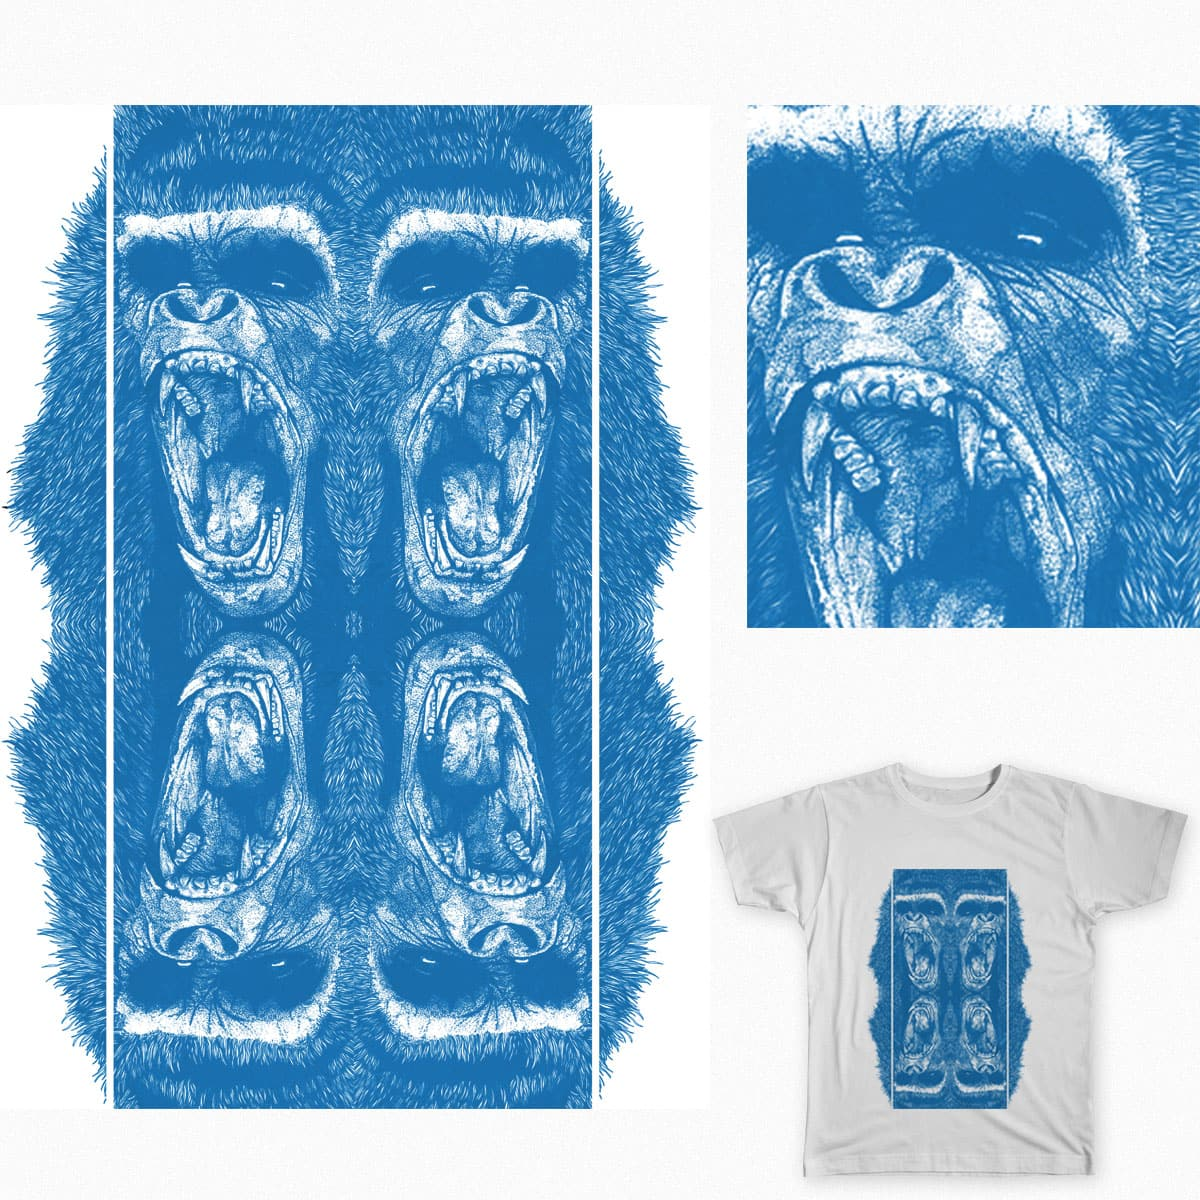 The Beast by ben.wills.33 on Threadless